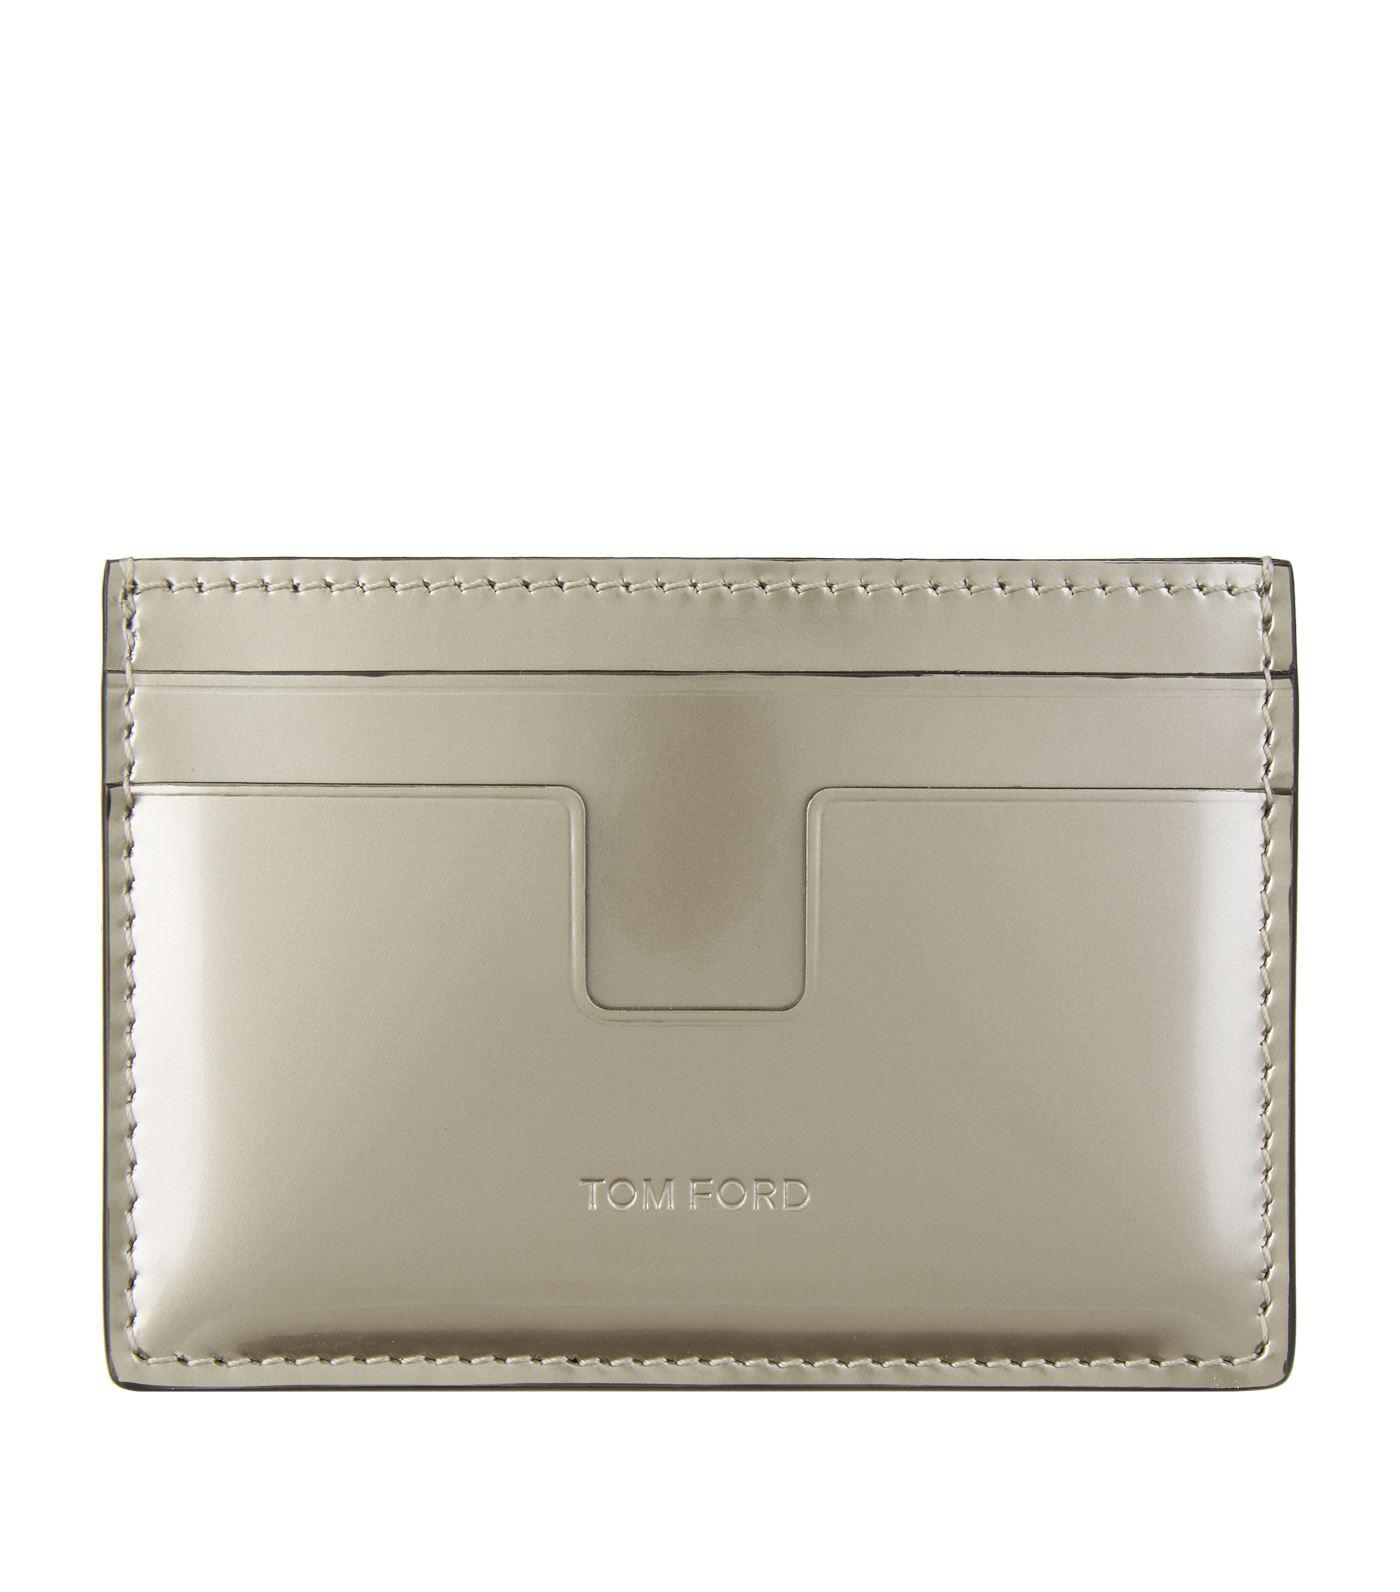 fdfb2b6b7c8 Tom Ford Patent Leather Metallic Card Holder in Metallic for Men - Lyst